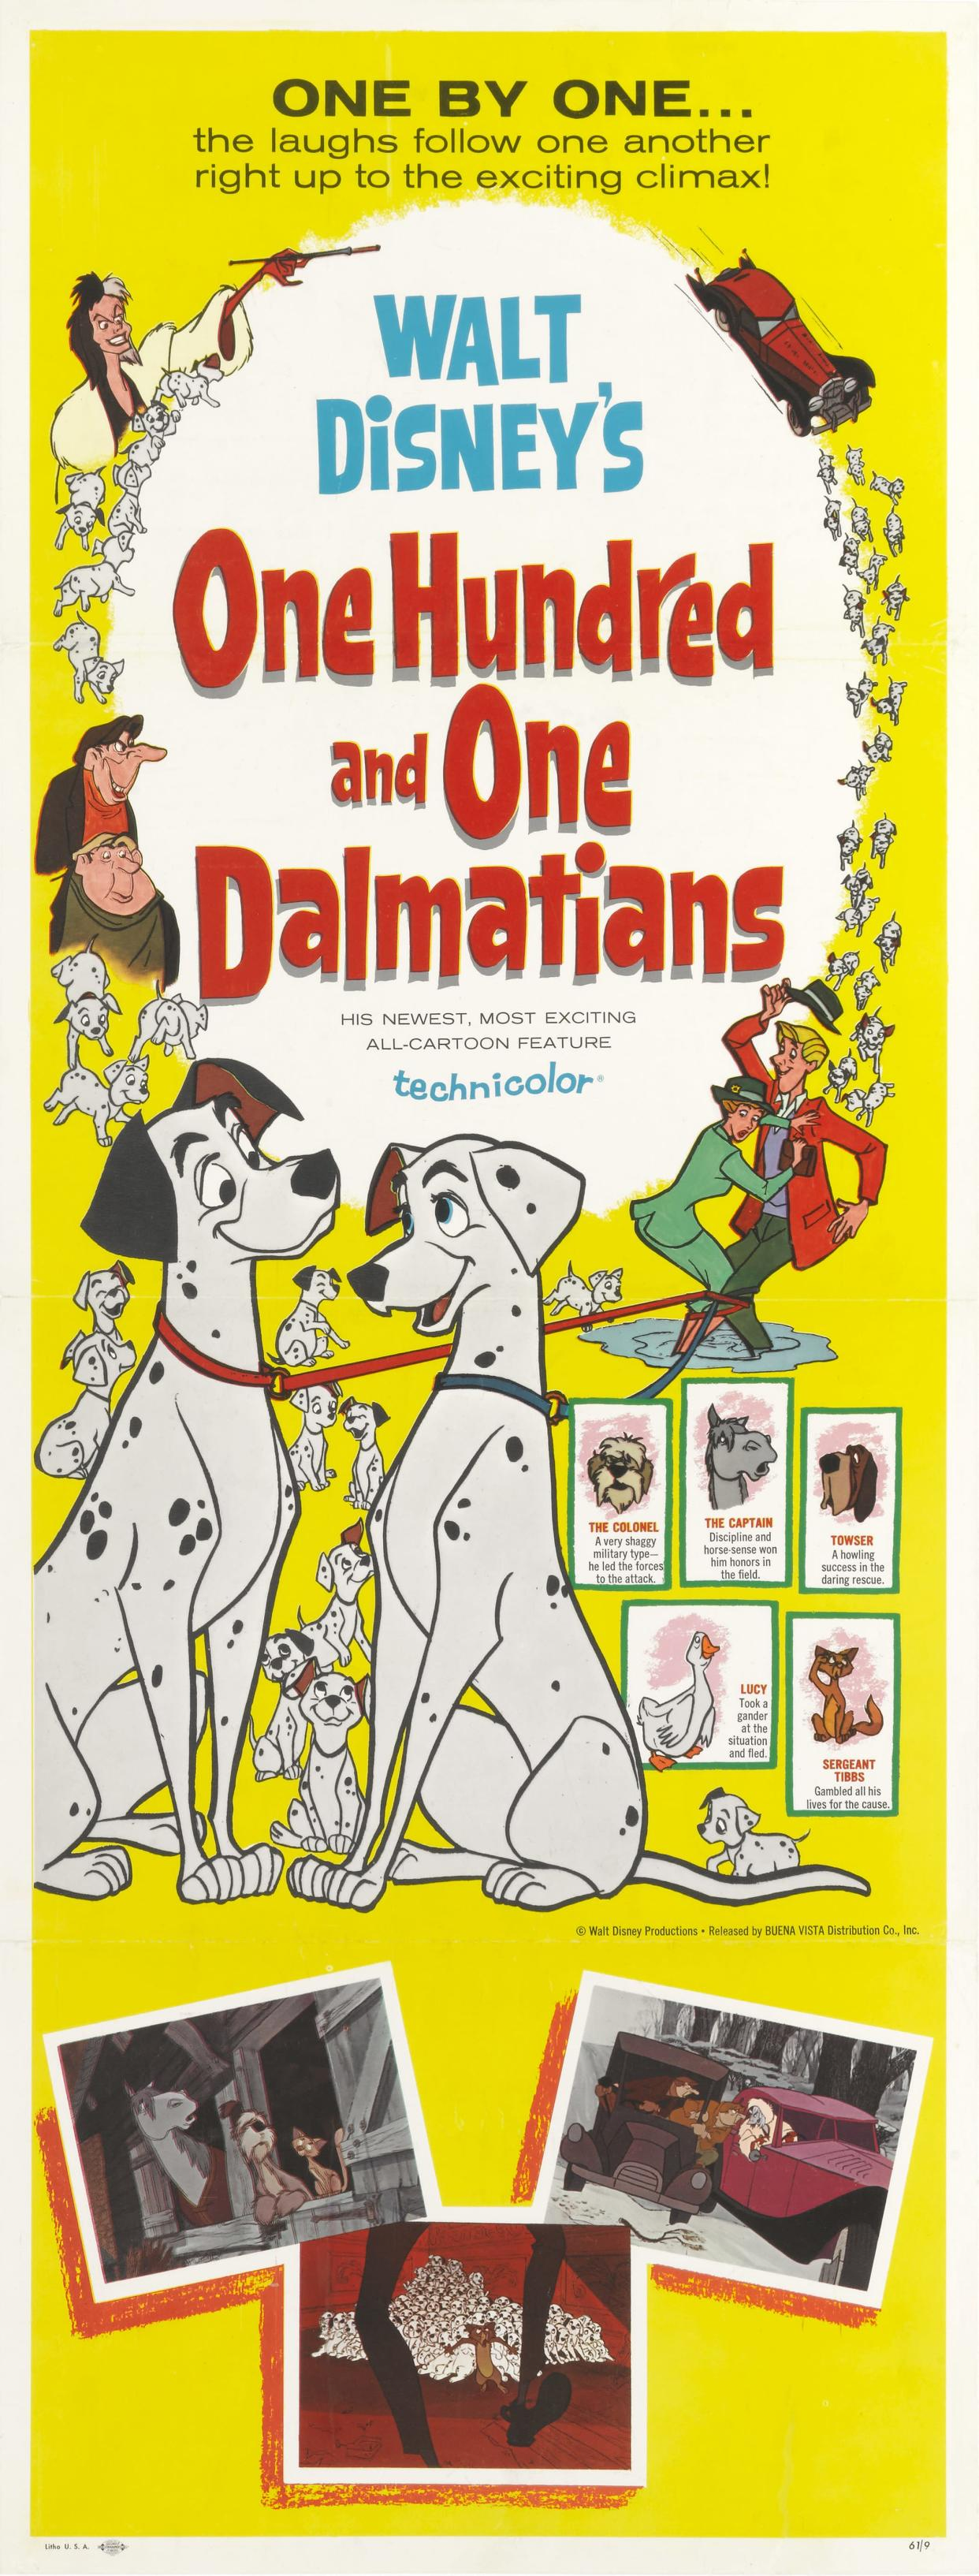 A poster for the Walt Disney movie '101 Dalmatians' ('One Hundred and One Dalmatians'), 1961.  (Photo by Movie Poster Image Art/Getty Images)